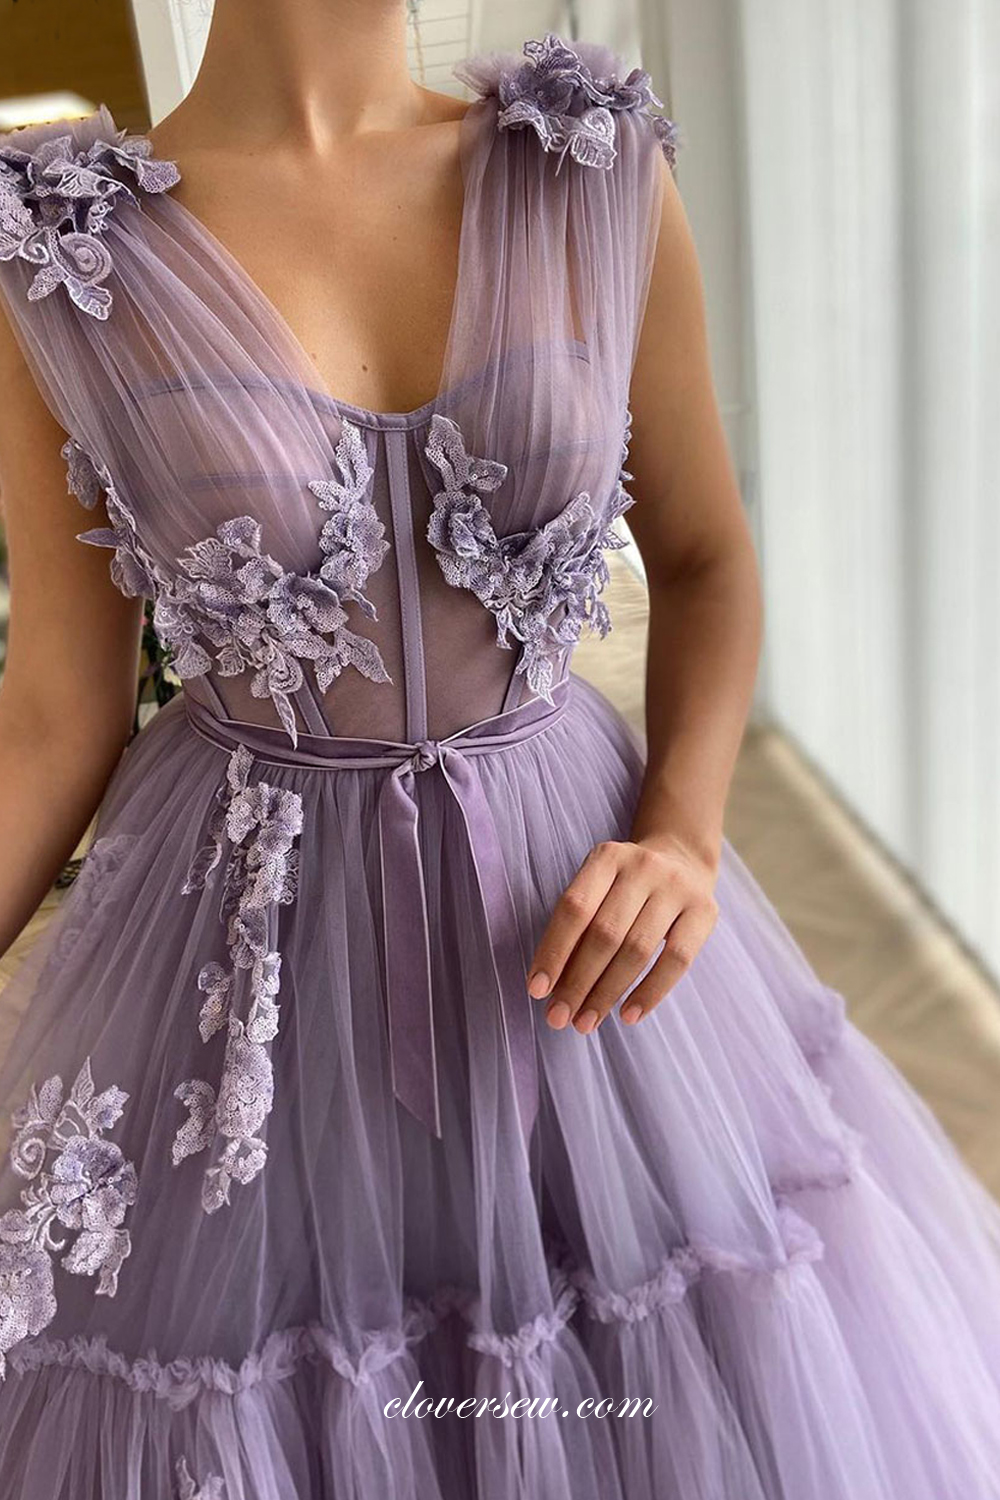 Lilac Prom Dresses Floral Appliques Prom Dresses A Line Prom Dresses Cp0071 From Cloversew In 2021 Boho Prom Dress Floral Prom Dresses Purple Prom Dress [ 1500 x 1000 Pixel ]